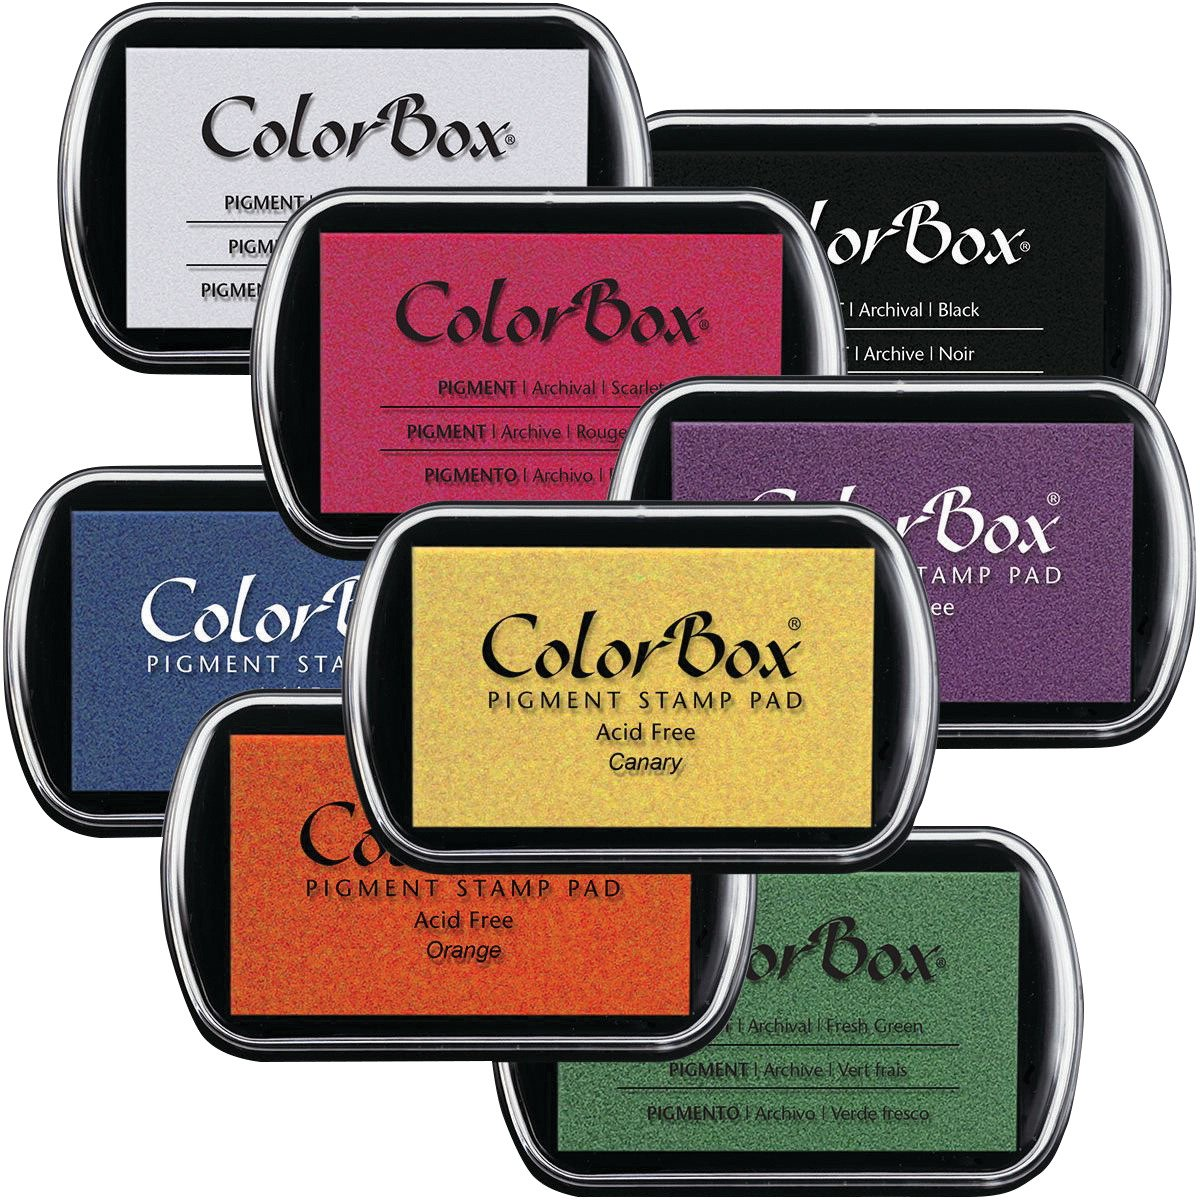 ColorBox 1072 Clearsnap Stamp Pad Set, 3-1/4 x 2-1/4 Size, Assorted Colors (Pack of 8) School Specialty 402822